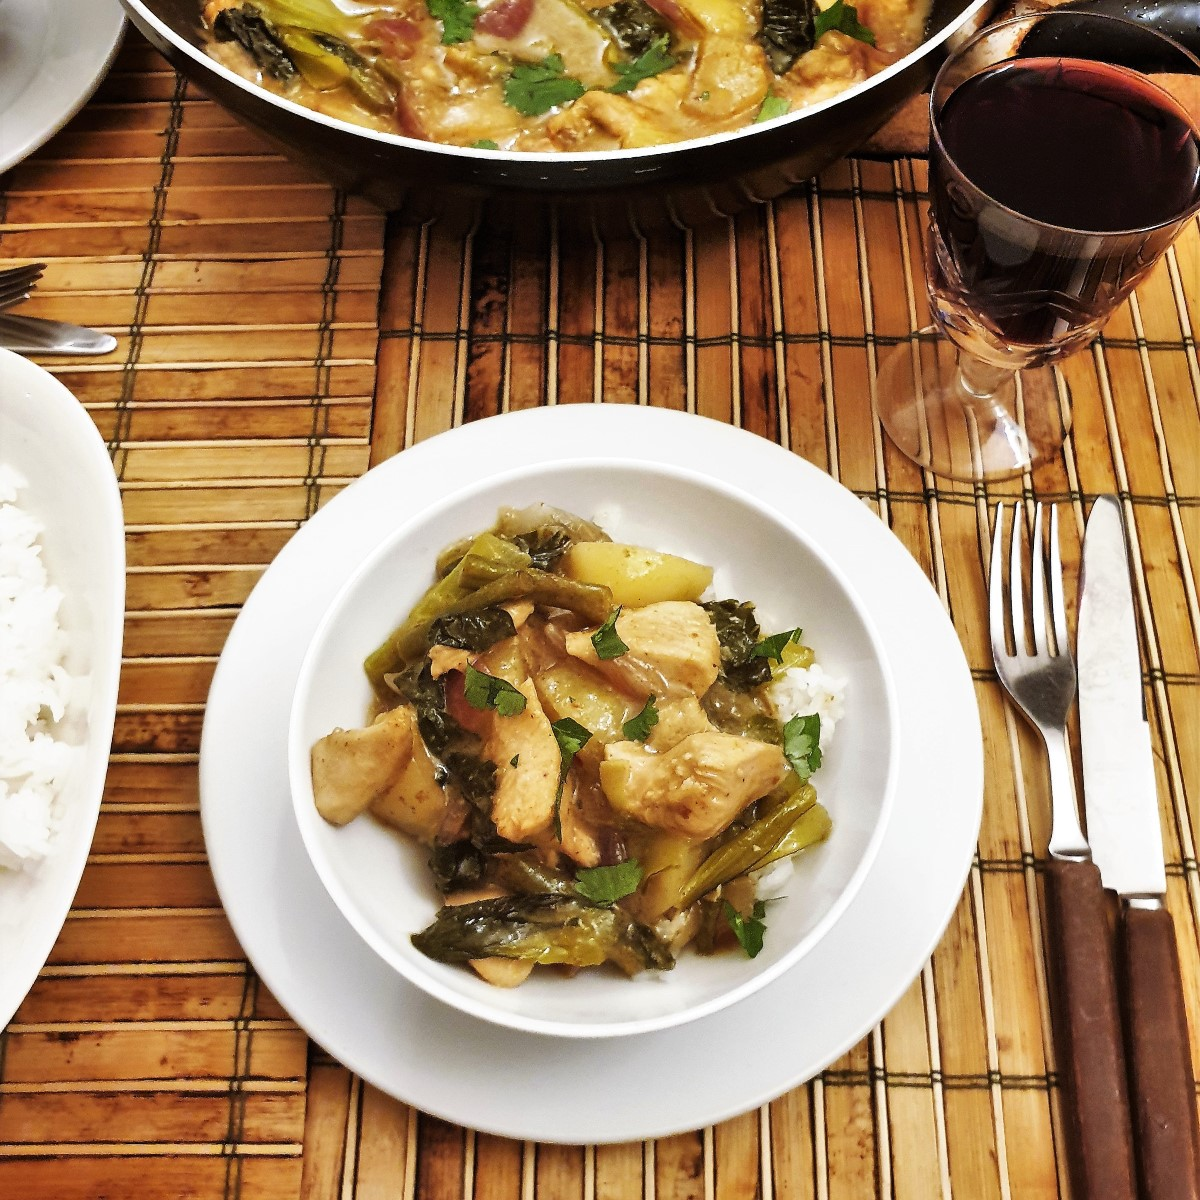 A table set with a bowl of thai green curry next to a dish of jasmine rice.